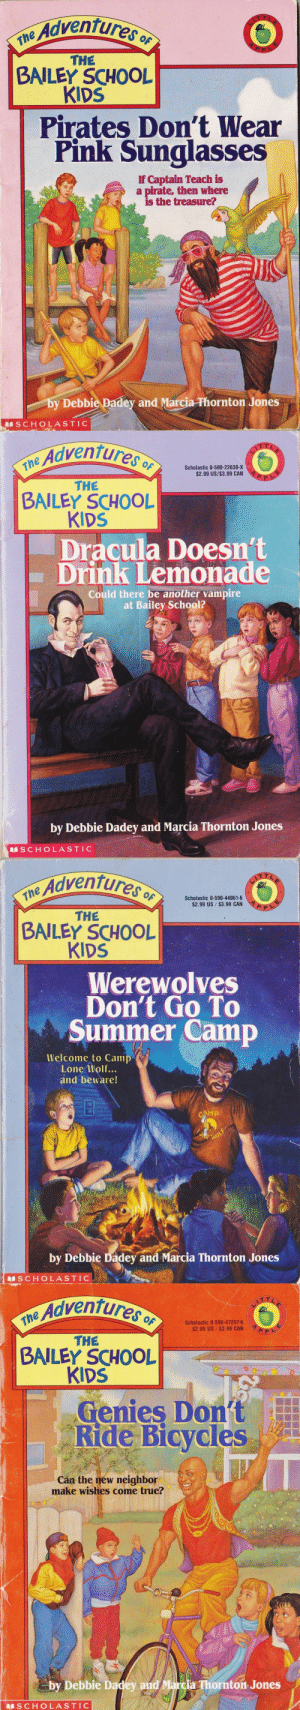 Children, Life, and School: Adventures o  ne  THE  BAILEY SCHOOL  KIDS  Pirates Don't Wear  Pink Sunglasses  If Captain Teach is  a pirate, then where  is the treasure?  by Debbie Padey and Marcia-Phornton Jones  SCHOLASTIC   Adventures  the Advent  Scholastic 0-590-22638-X  $2.99 US/$3.99 CAN  THE  BAILEY SCHOOL  KIDS  Dracula Doesn't  Drink Lemonade  Could there be another vampire  at Bailey School?  by Debbie Dadey and Marcia Thornton Jones  S CHOLASTIC   Adventures o  $2.99 US $3.99 CAN  THE  BAILEY SCHOOL  KIDS  Werewolves  Don't Go To  Summer Camp  Welcome to Camp  Lone Wolf...  and beware!  by Debbie Dadey and Marcia Thornton Jones  S CHOLASTIC   e Adventures  Scholastic 0-590-47297-6  $2.99 US $3.99 CAN  THE  BAILEY SCHOOL  KIDS  Genies Dont  Ride Bicycles  Cán the new neighbor  make wishes come true?  by Debbie Dadey and Marcia Thornton Jones  SCHOLASTIC milovelylife531: marzipanandminutiae:  cursed-mike-vining:  minestuck:  alternate title: young children gawk at flaming homosexuals   Another alternate title: the bailey school kids need to mind their own damn business  the covers with women are equally gay so basically having these obnoxious kids pry into your personal life is mlm/wlw solidarity   I know I've never read these, but I feel like I know these stories?